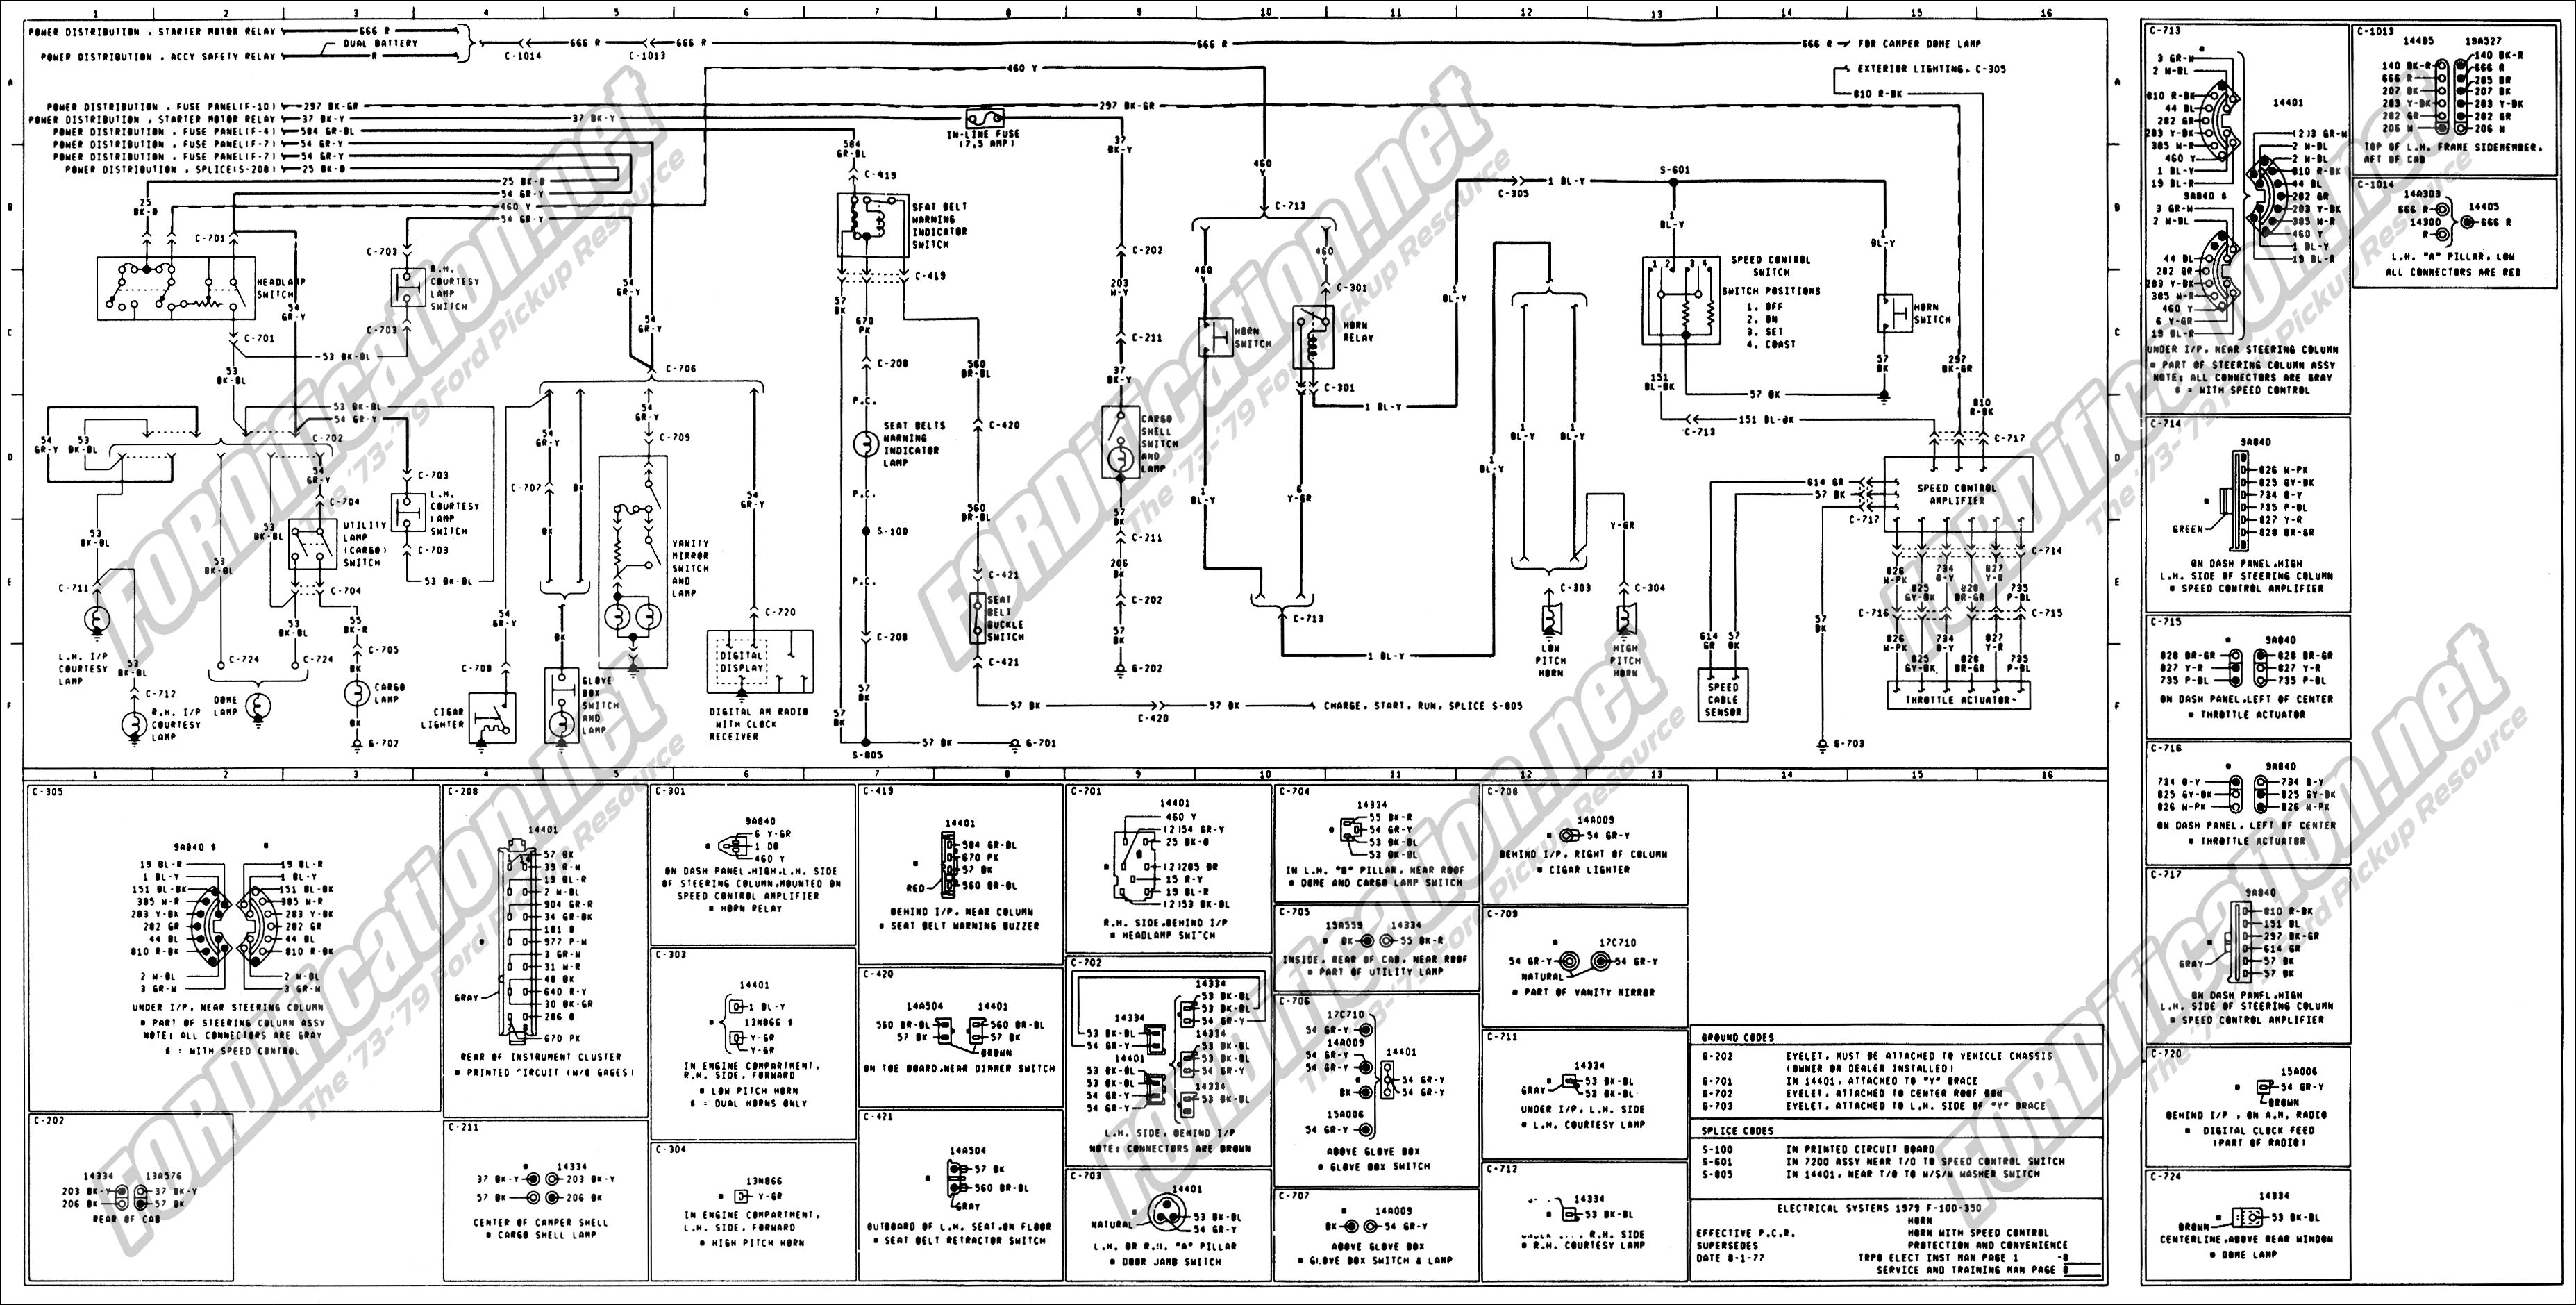 wiring_79master_8of9 1976 ford f150 wiring diagram 1979 ford truck wiring harness ford truck wiring schematics at bayanpartner.co